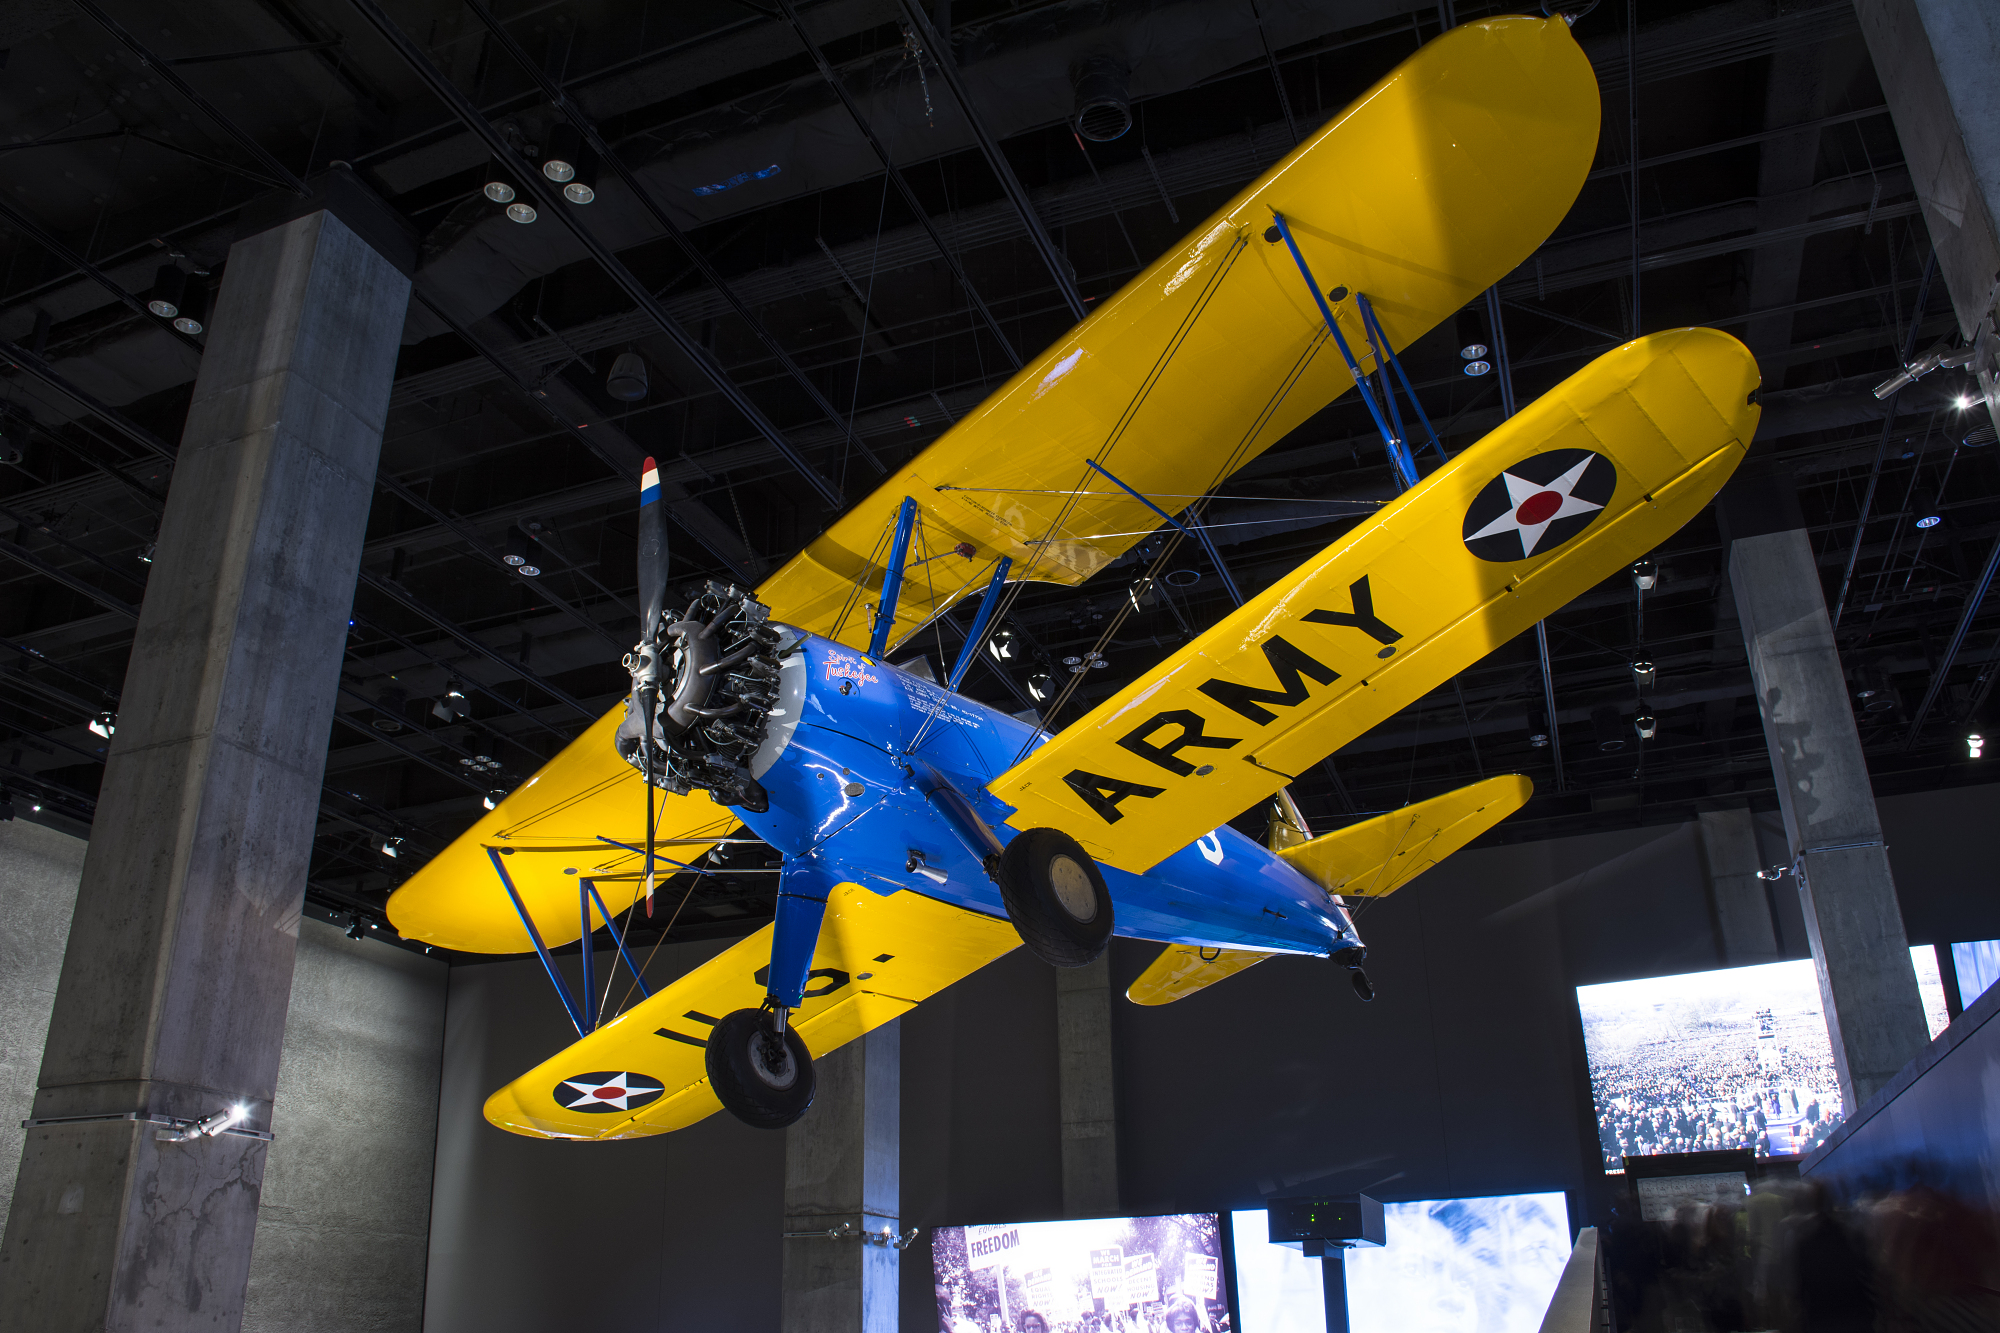 Installation of Tuskegee Training Biplane, NMAAHC